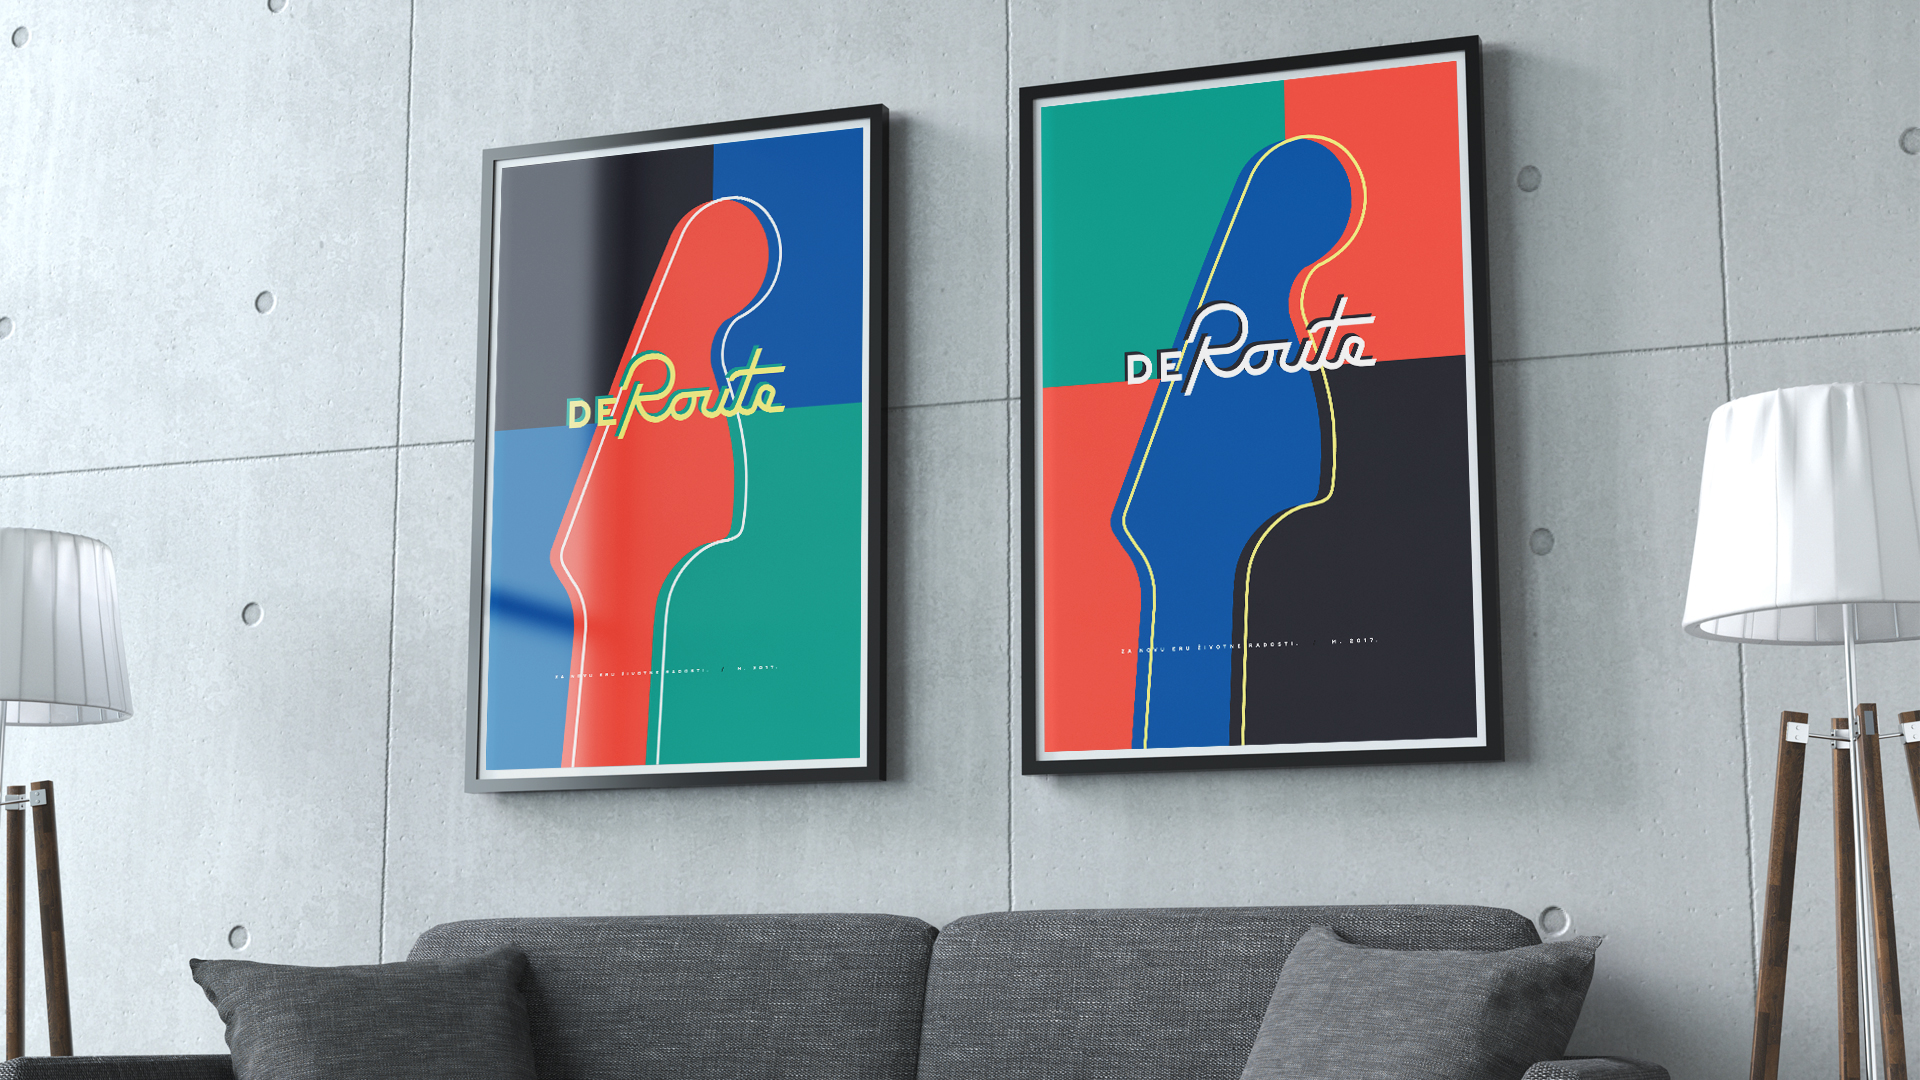 DeRoute-Visual-Identity-by-Emtisquare-10